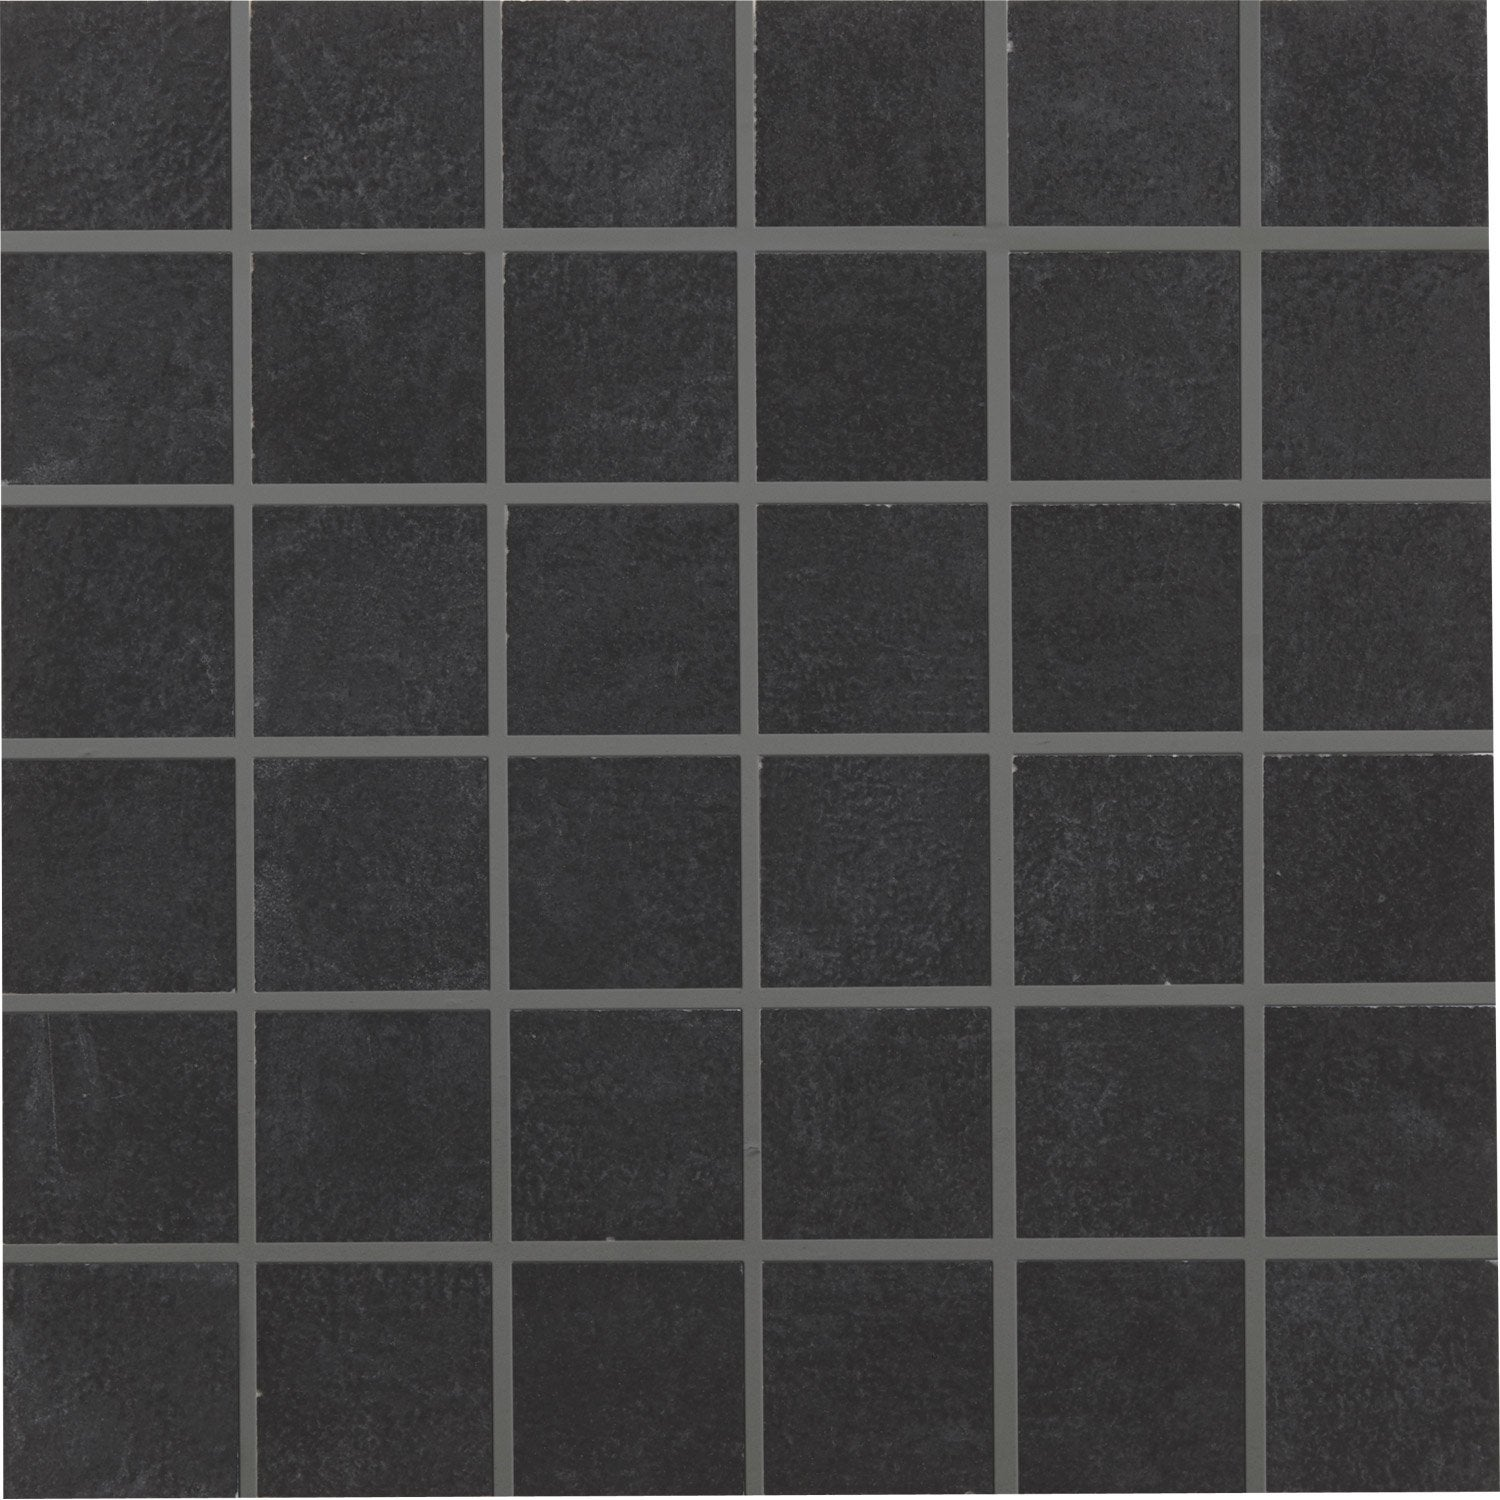 Carrelage 5x5 noir for Carrelage sol noir